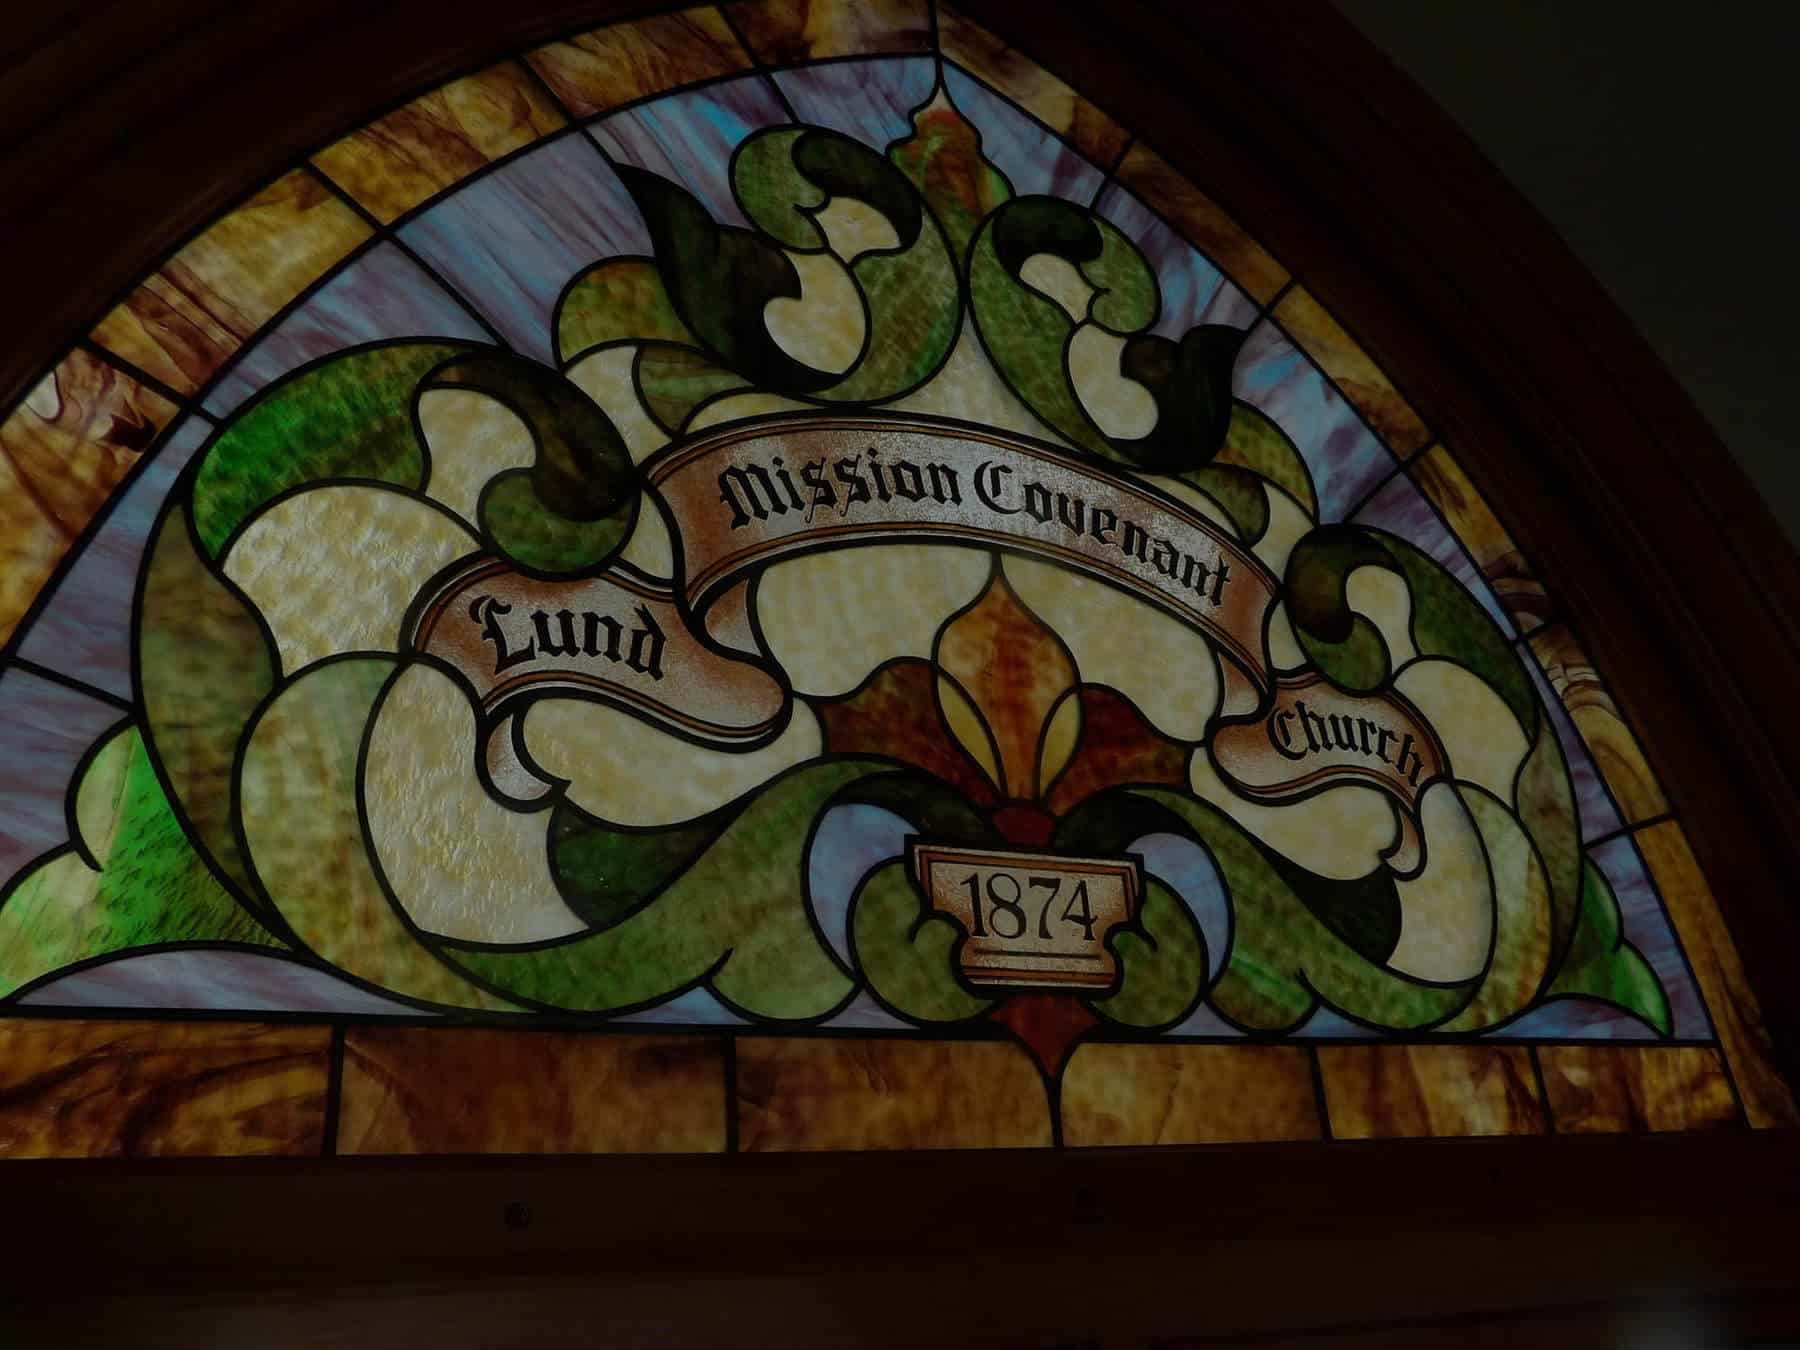 Lund Mission Covenant Church